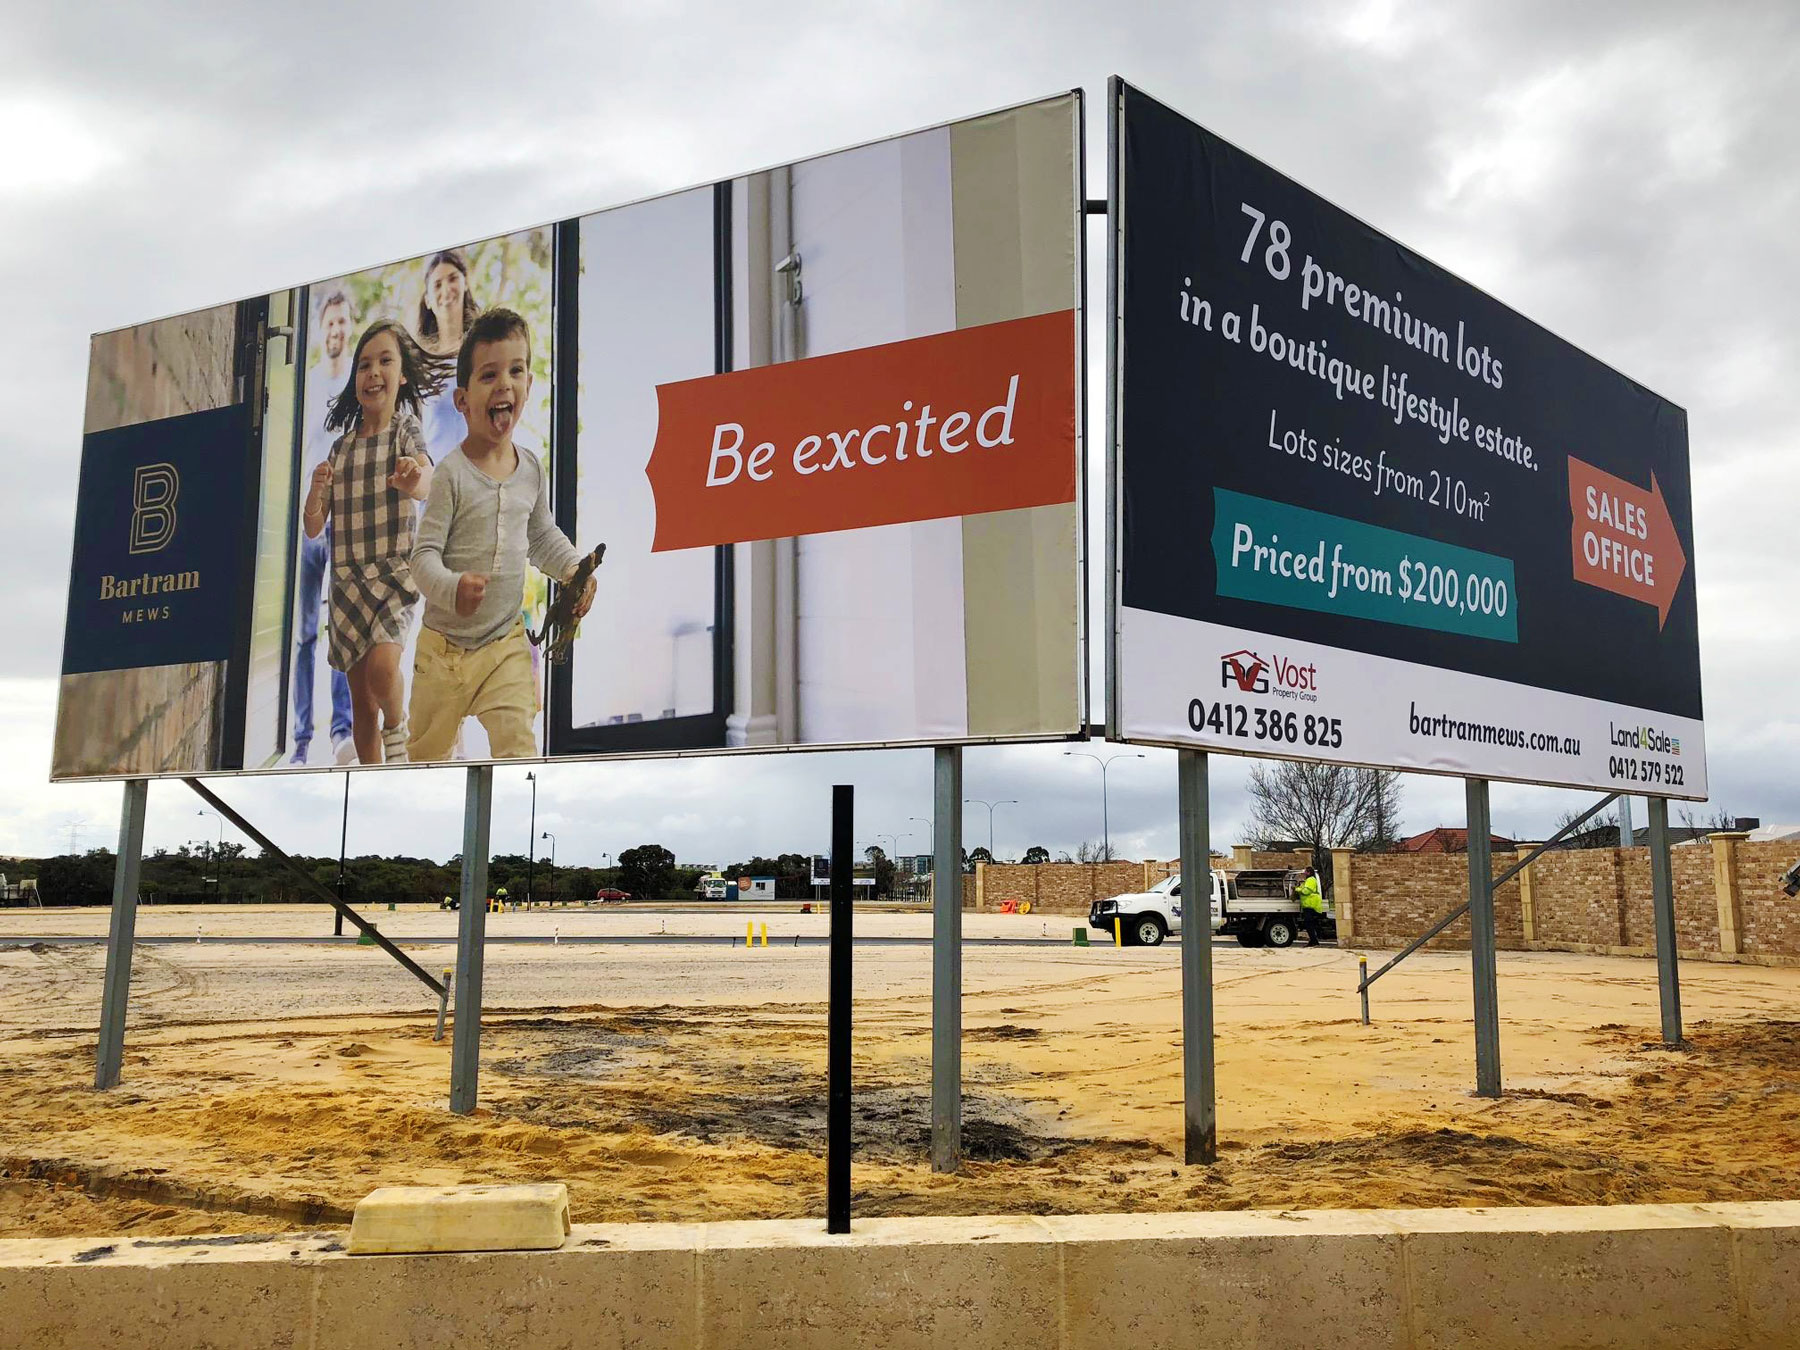 Billboards at Bartram Mews in Success, South of Perth